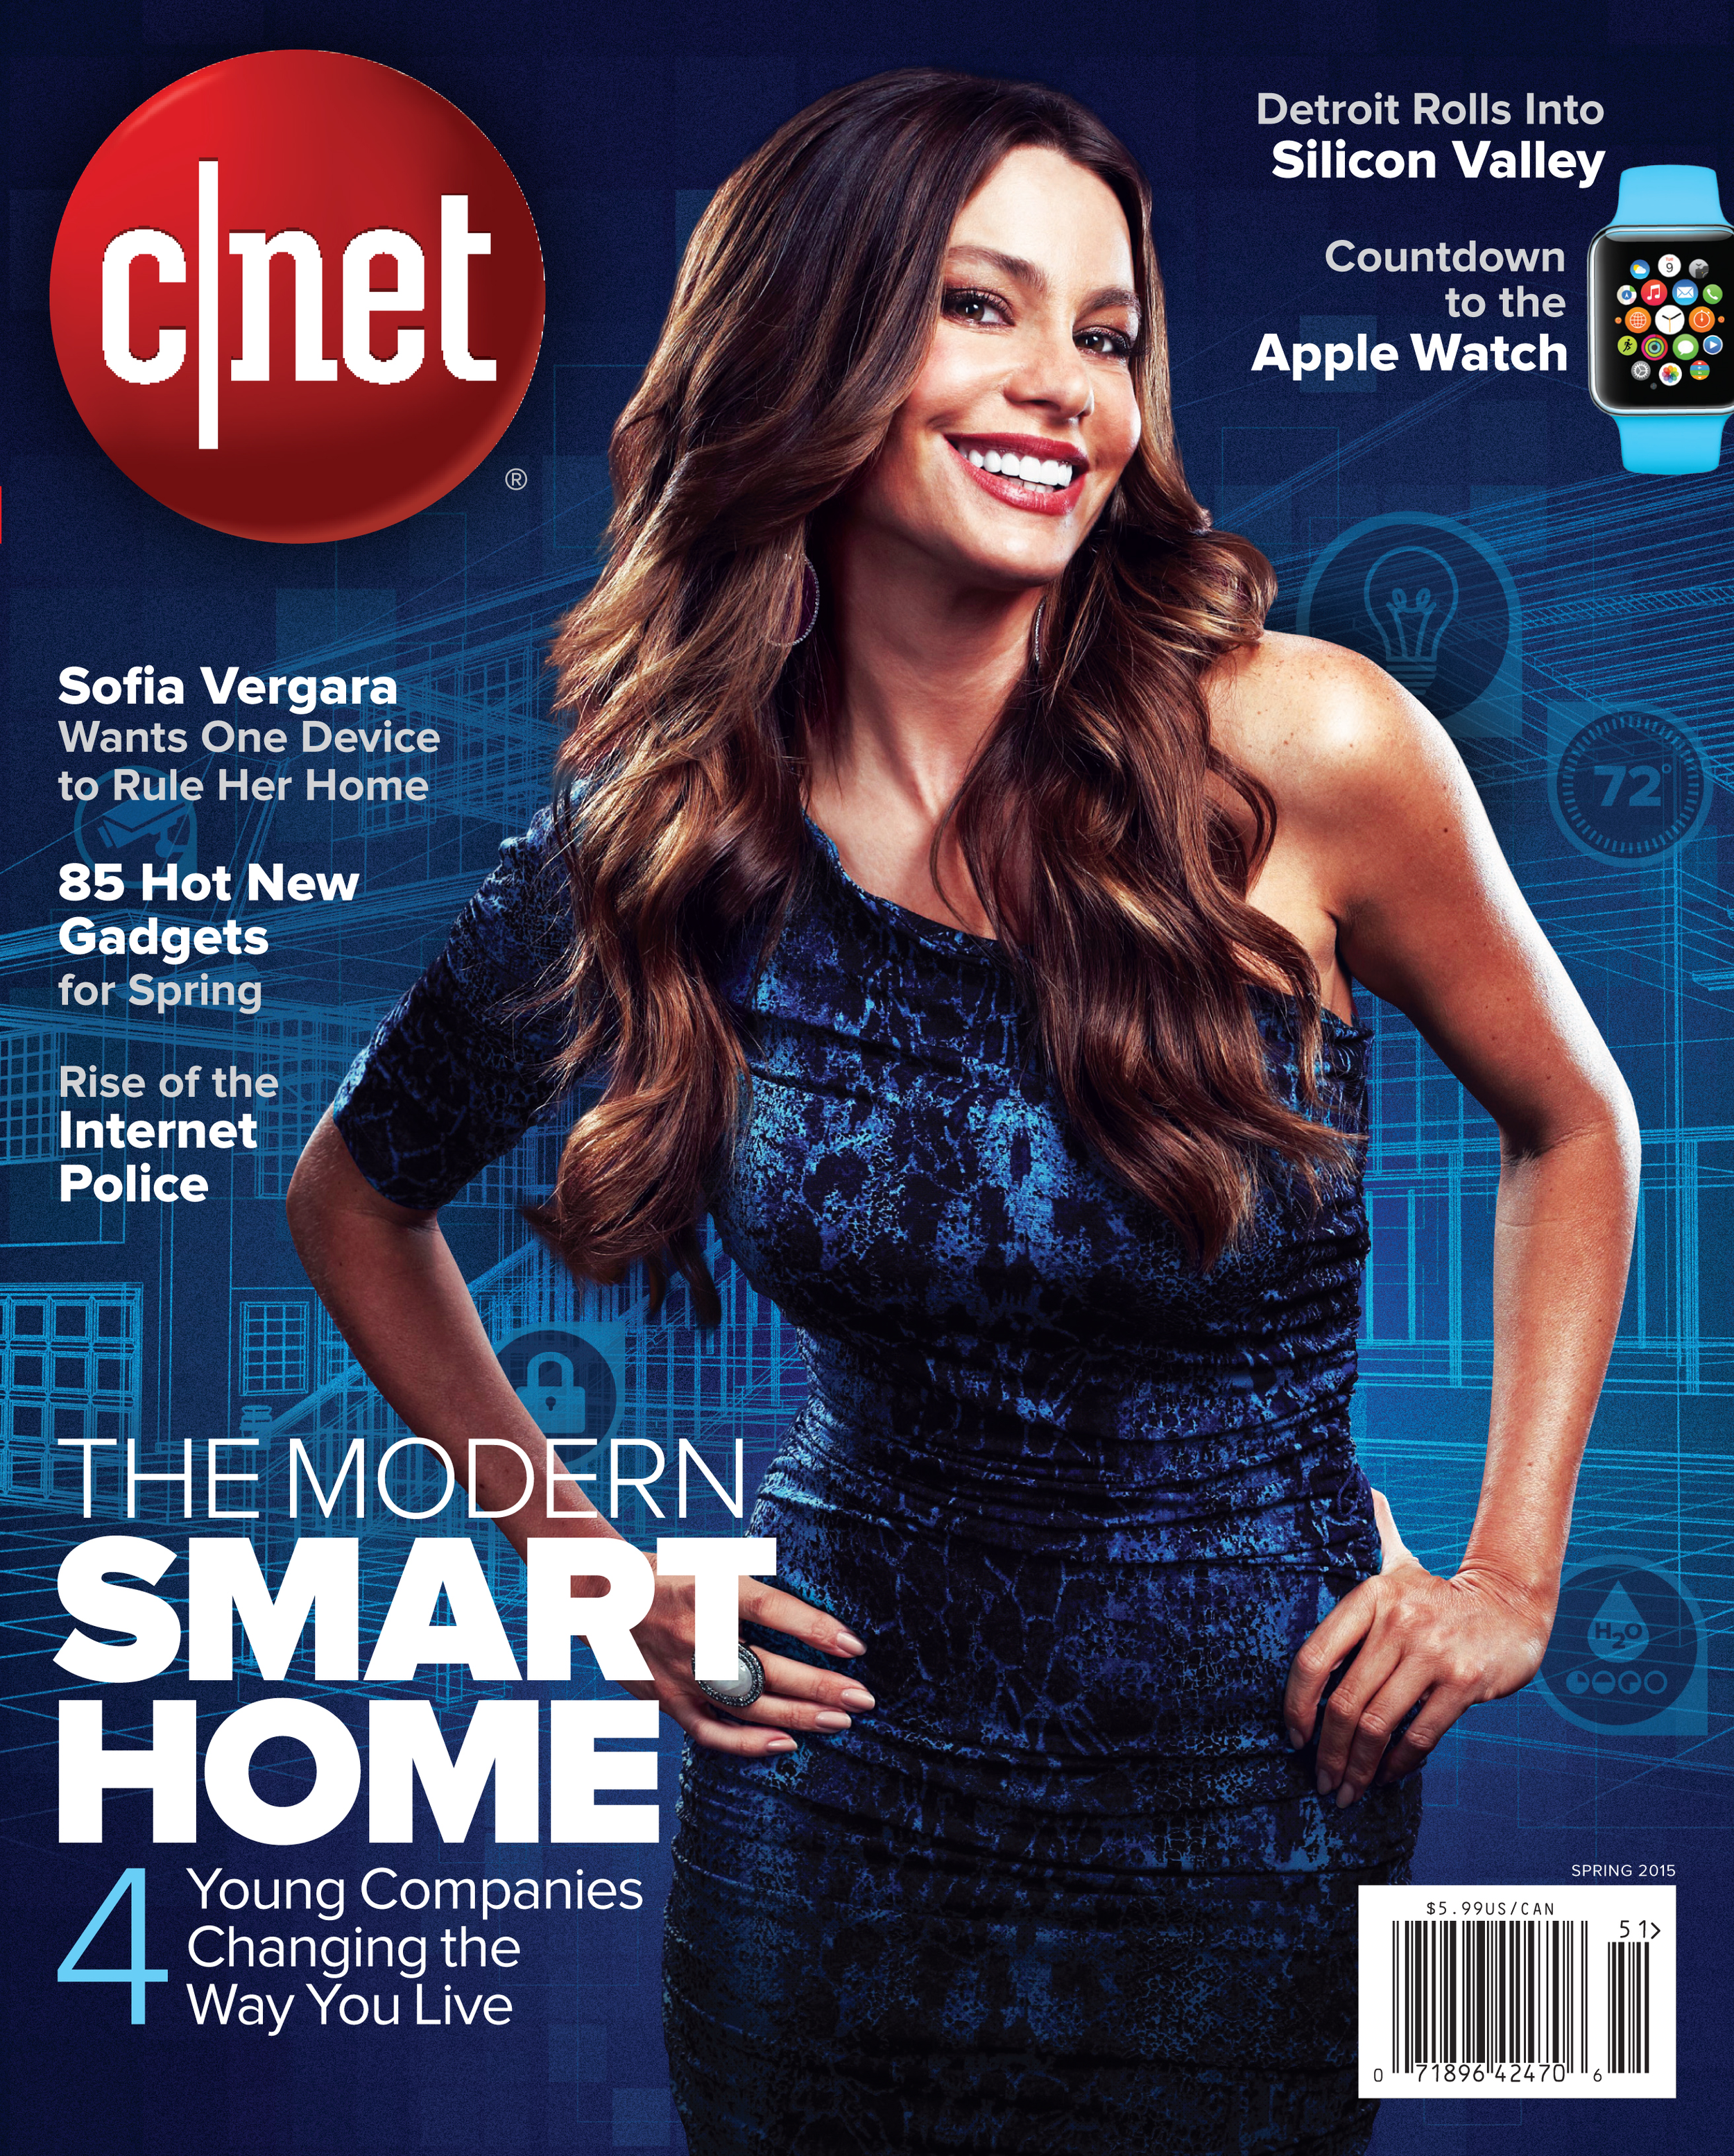 CNET - CNET is a global consumer tech website that focuses on tech news, product reviews, and how-tos. I write how-to articles (mostly focused around Windows 10) for CNET.Scroll down for a selection of clips, or click here to see all of my work for CNET.